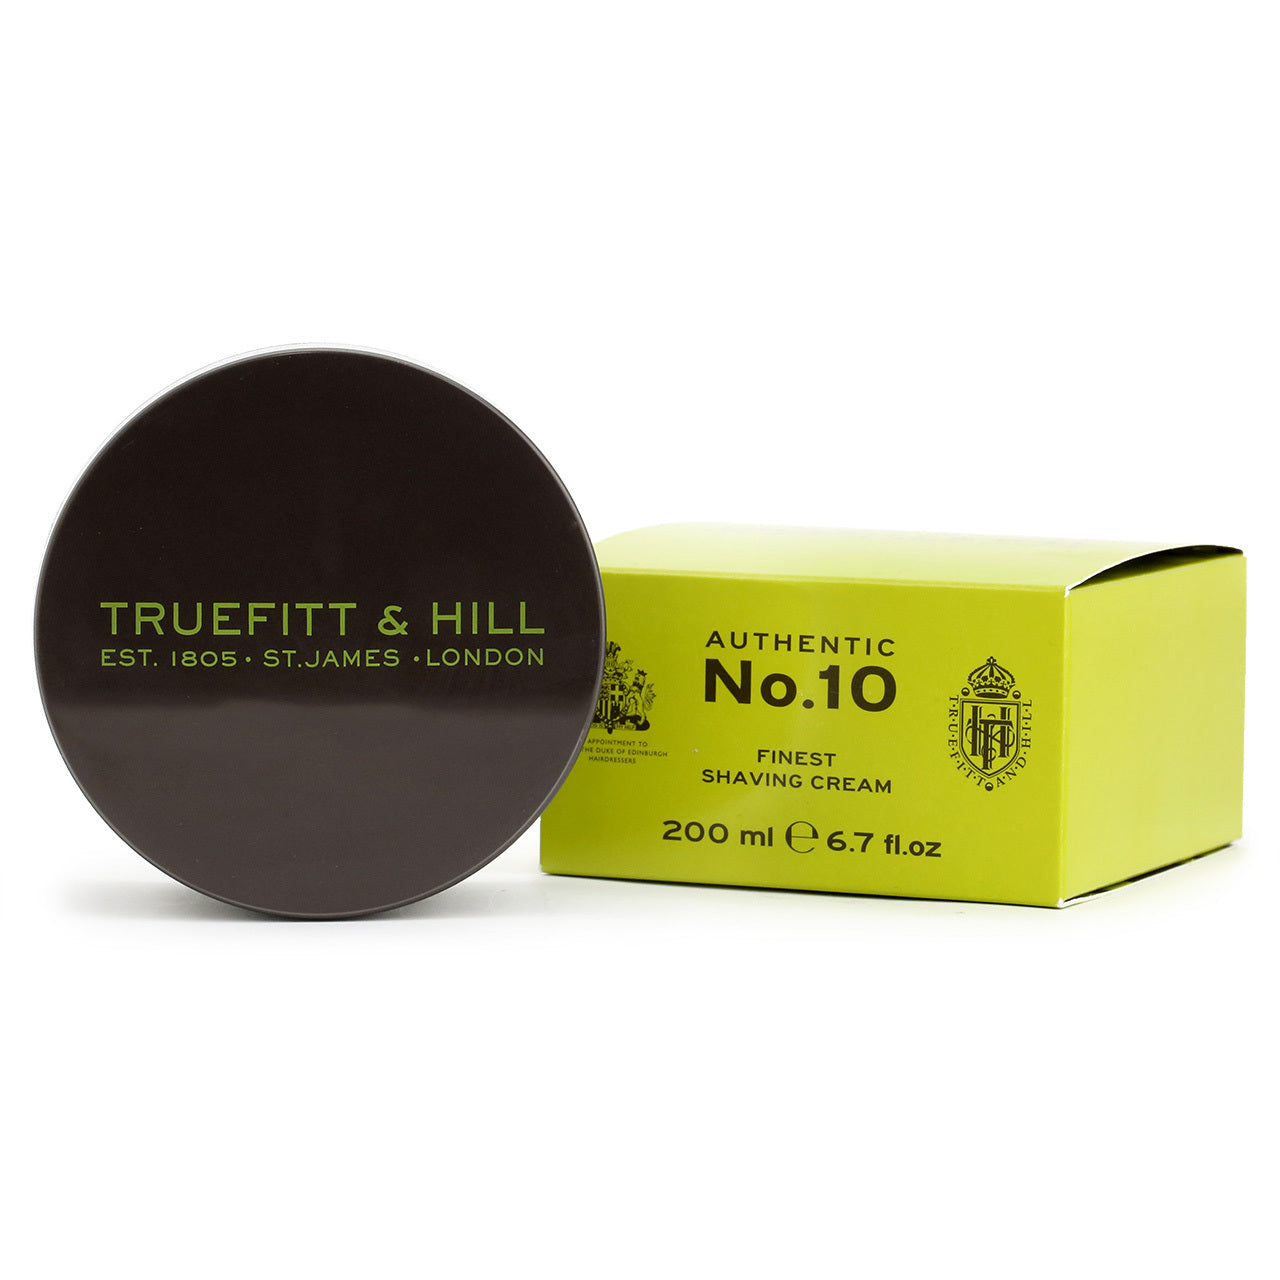 Truefitt & Hill Authentic No 10 Finest Shaving cream, 200ml tub and box